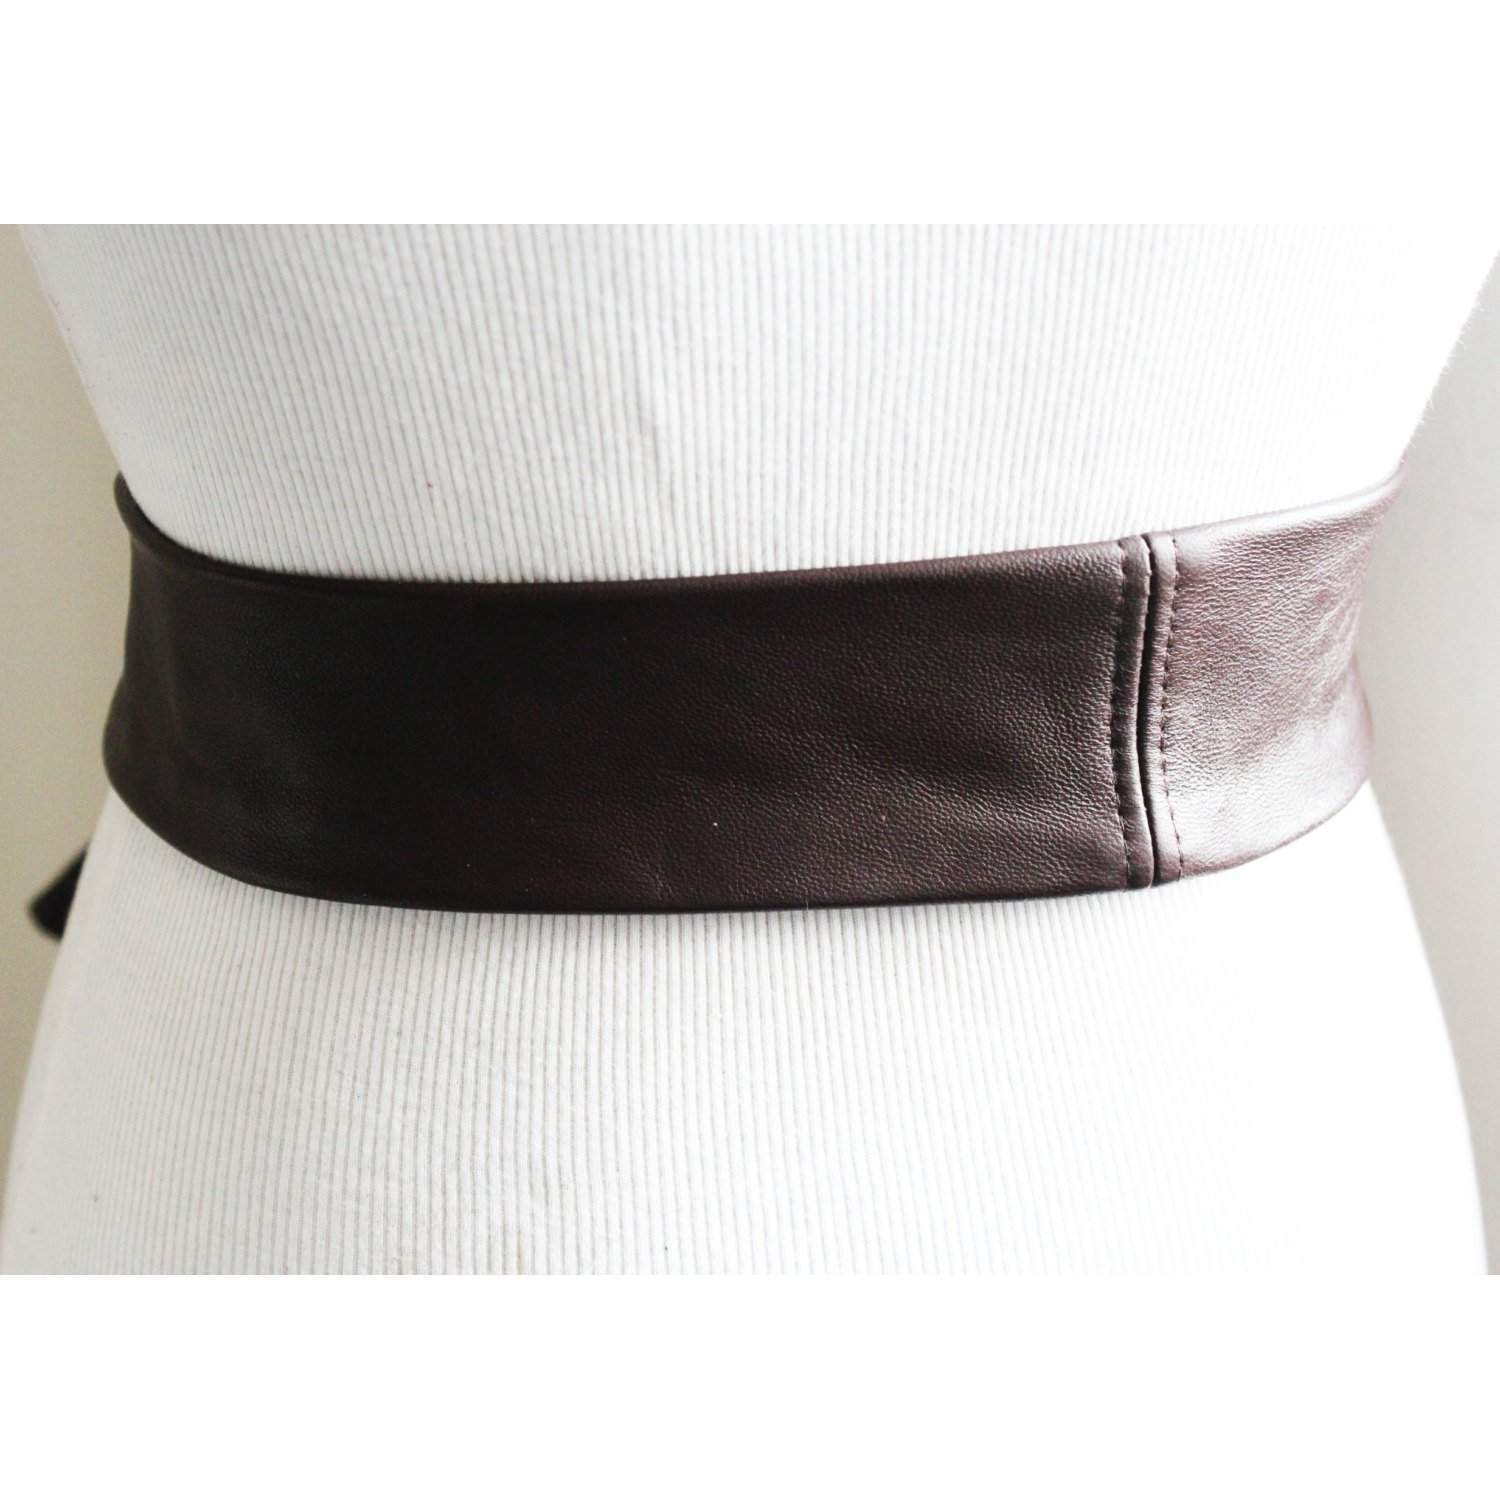 Dark Brown Soft Leather Coat Tie Belt | Leather Narrow Belt | Leather Replacement belt | Narrow Nappa Leather Belt - loveyaayaa